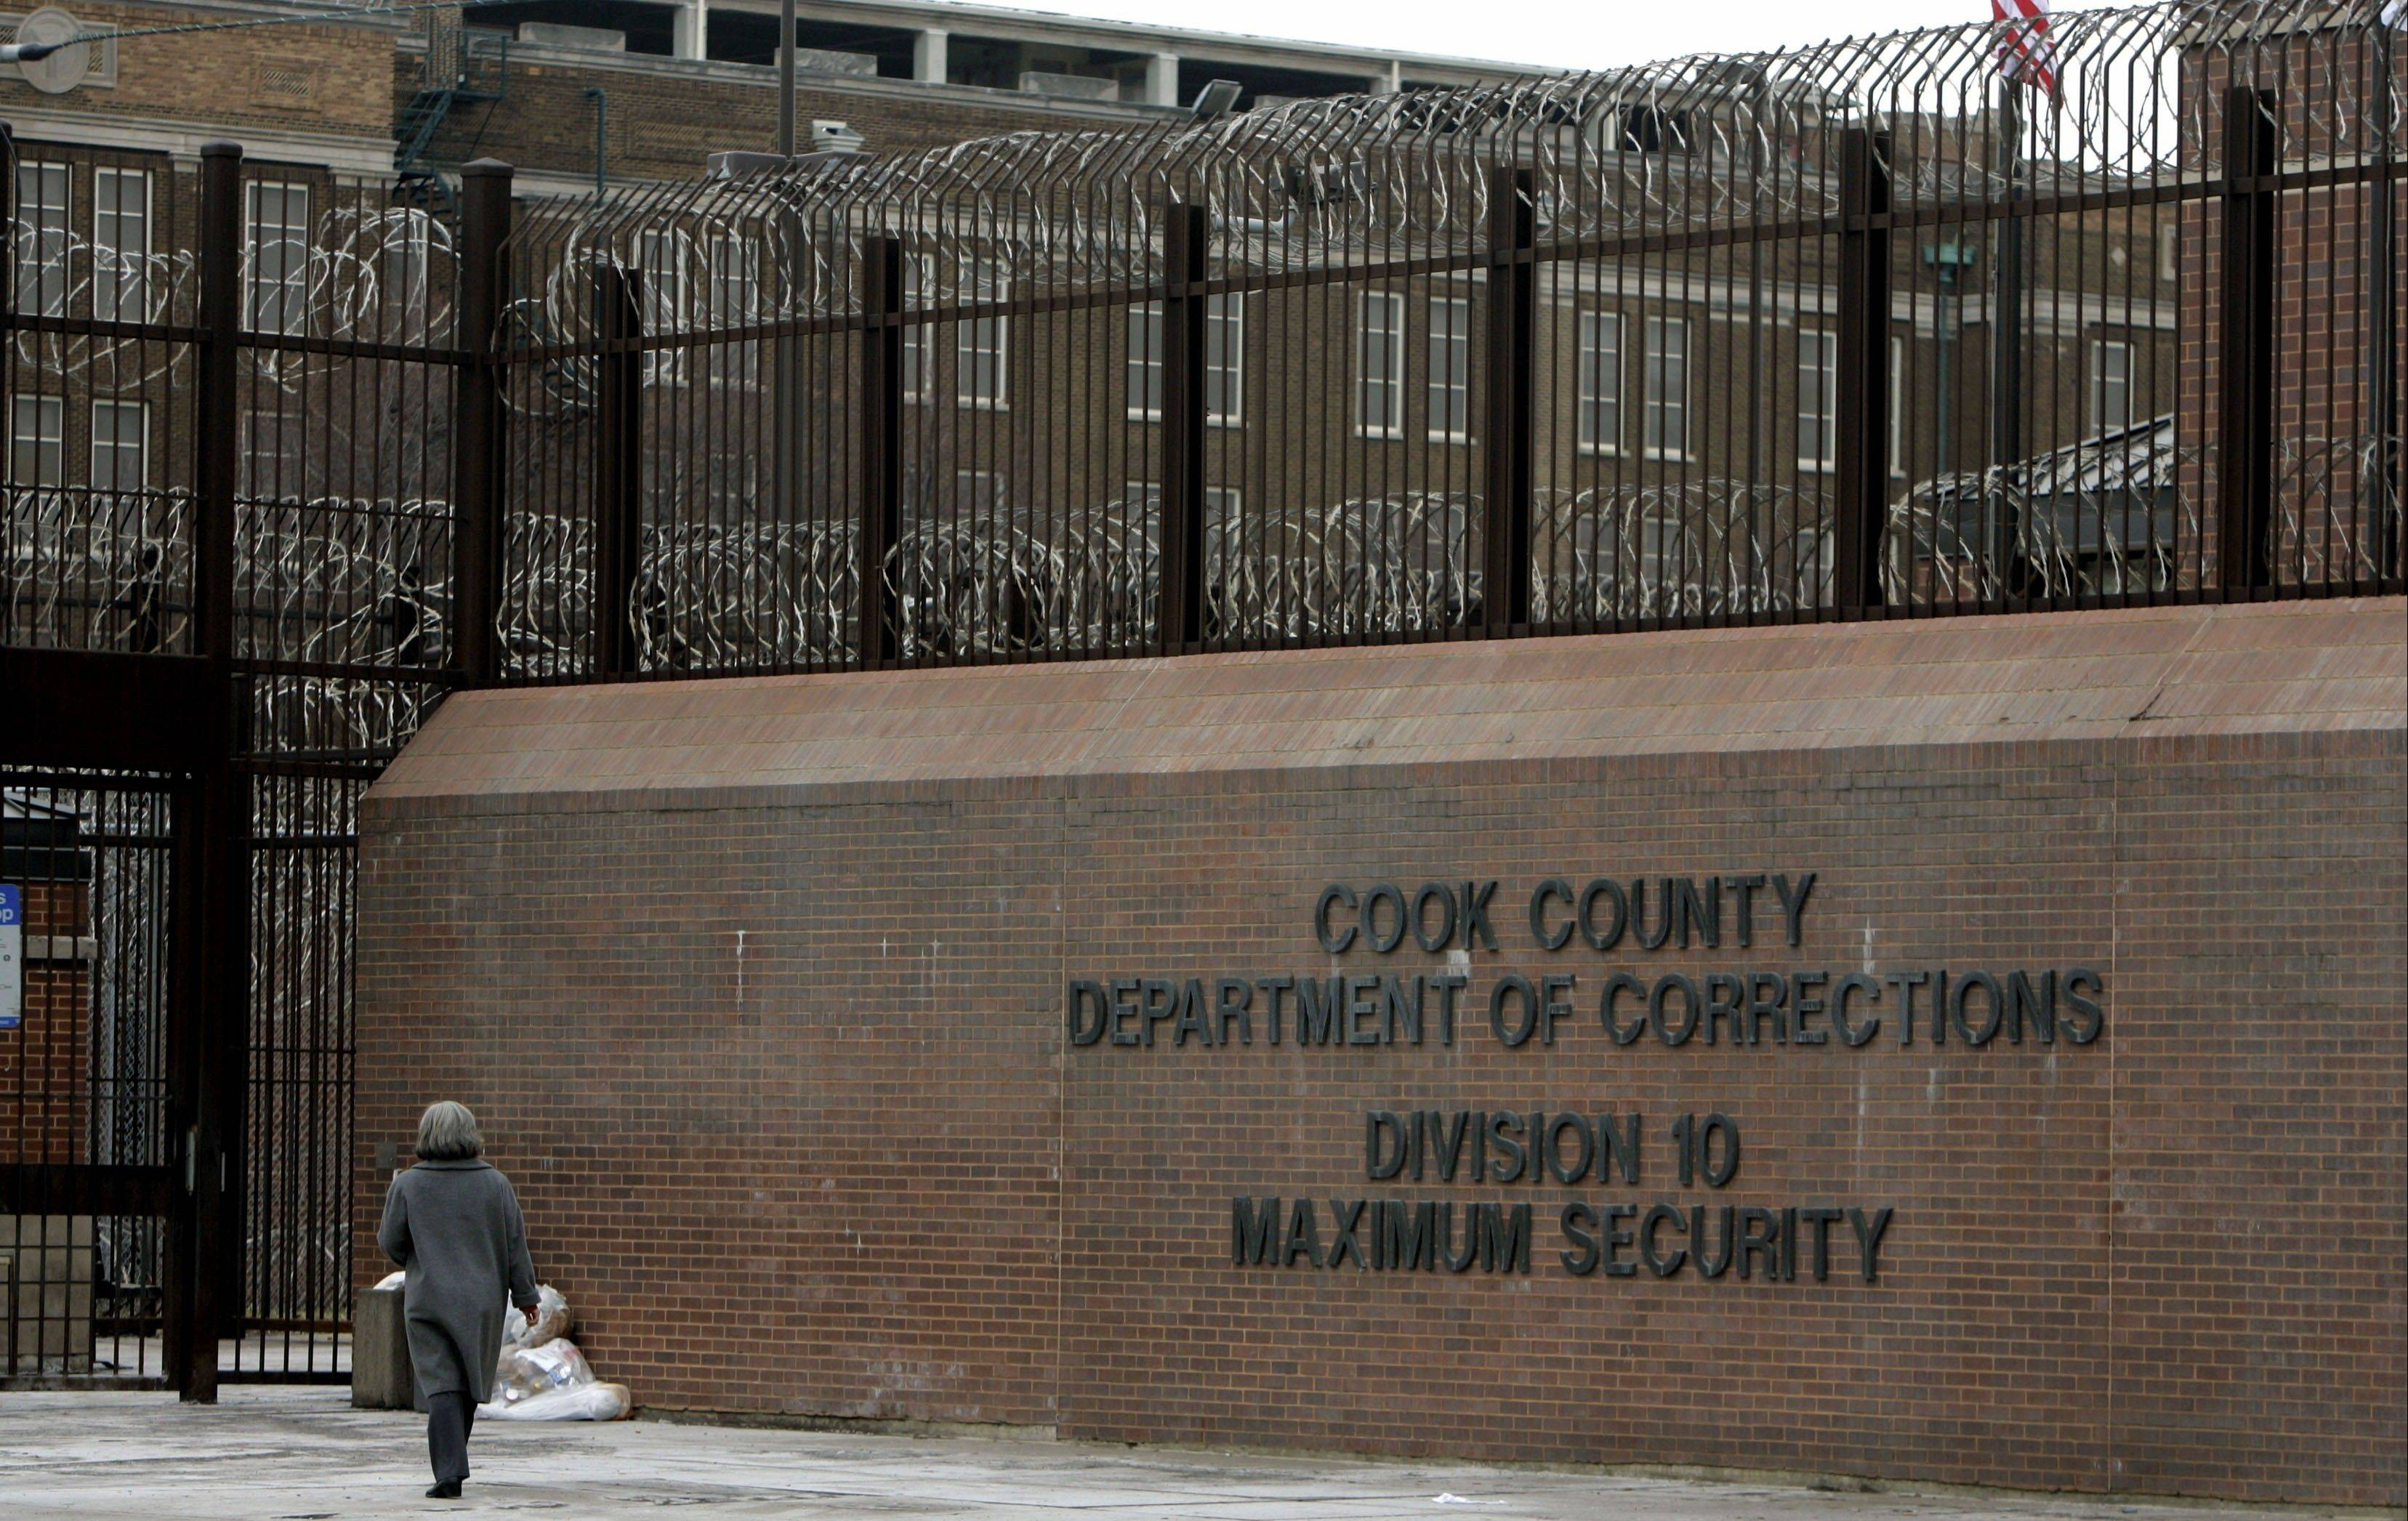 People arrested in the suburbs on weekends now go to Chicago for bond hearings, meaning they could spend more time in Cook County jail before receiving bond and find it more difficult to get home if released.